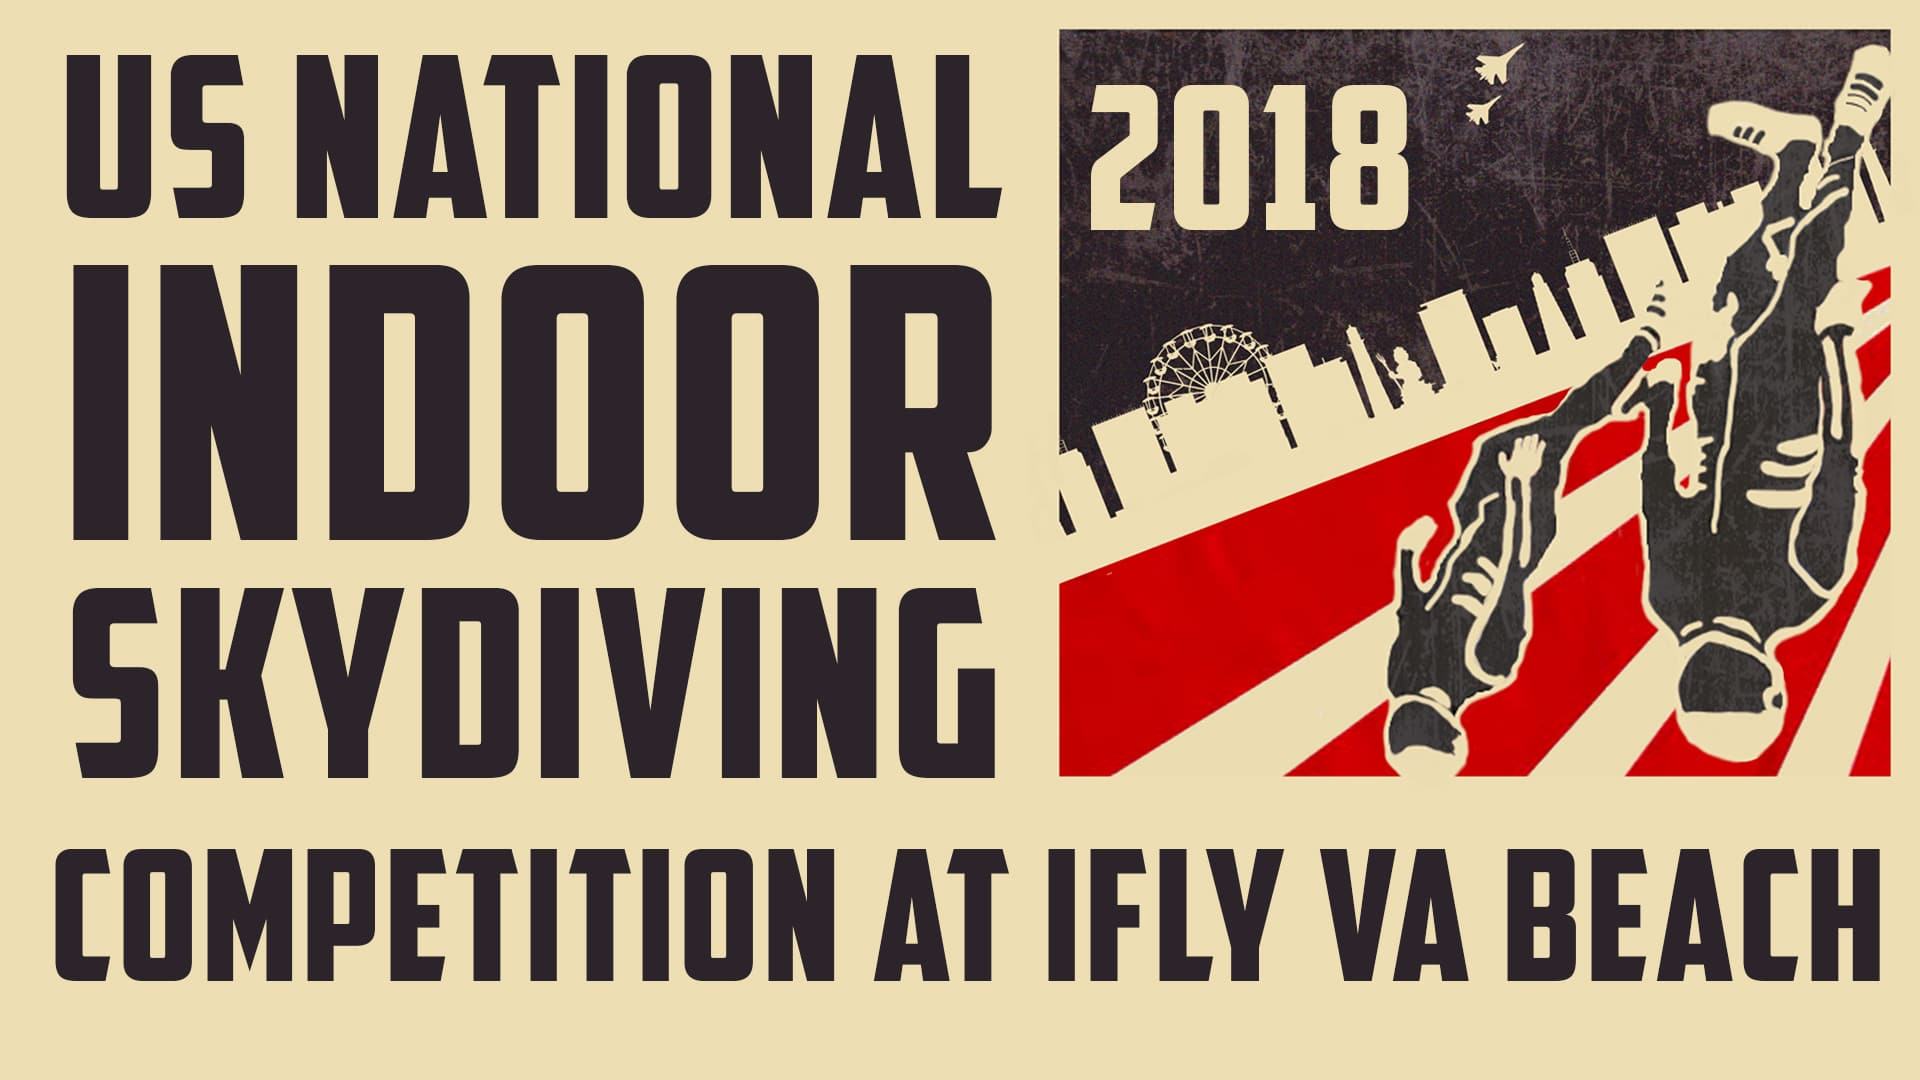 2018 US National Indoor Skydiving Competition Flyer